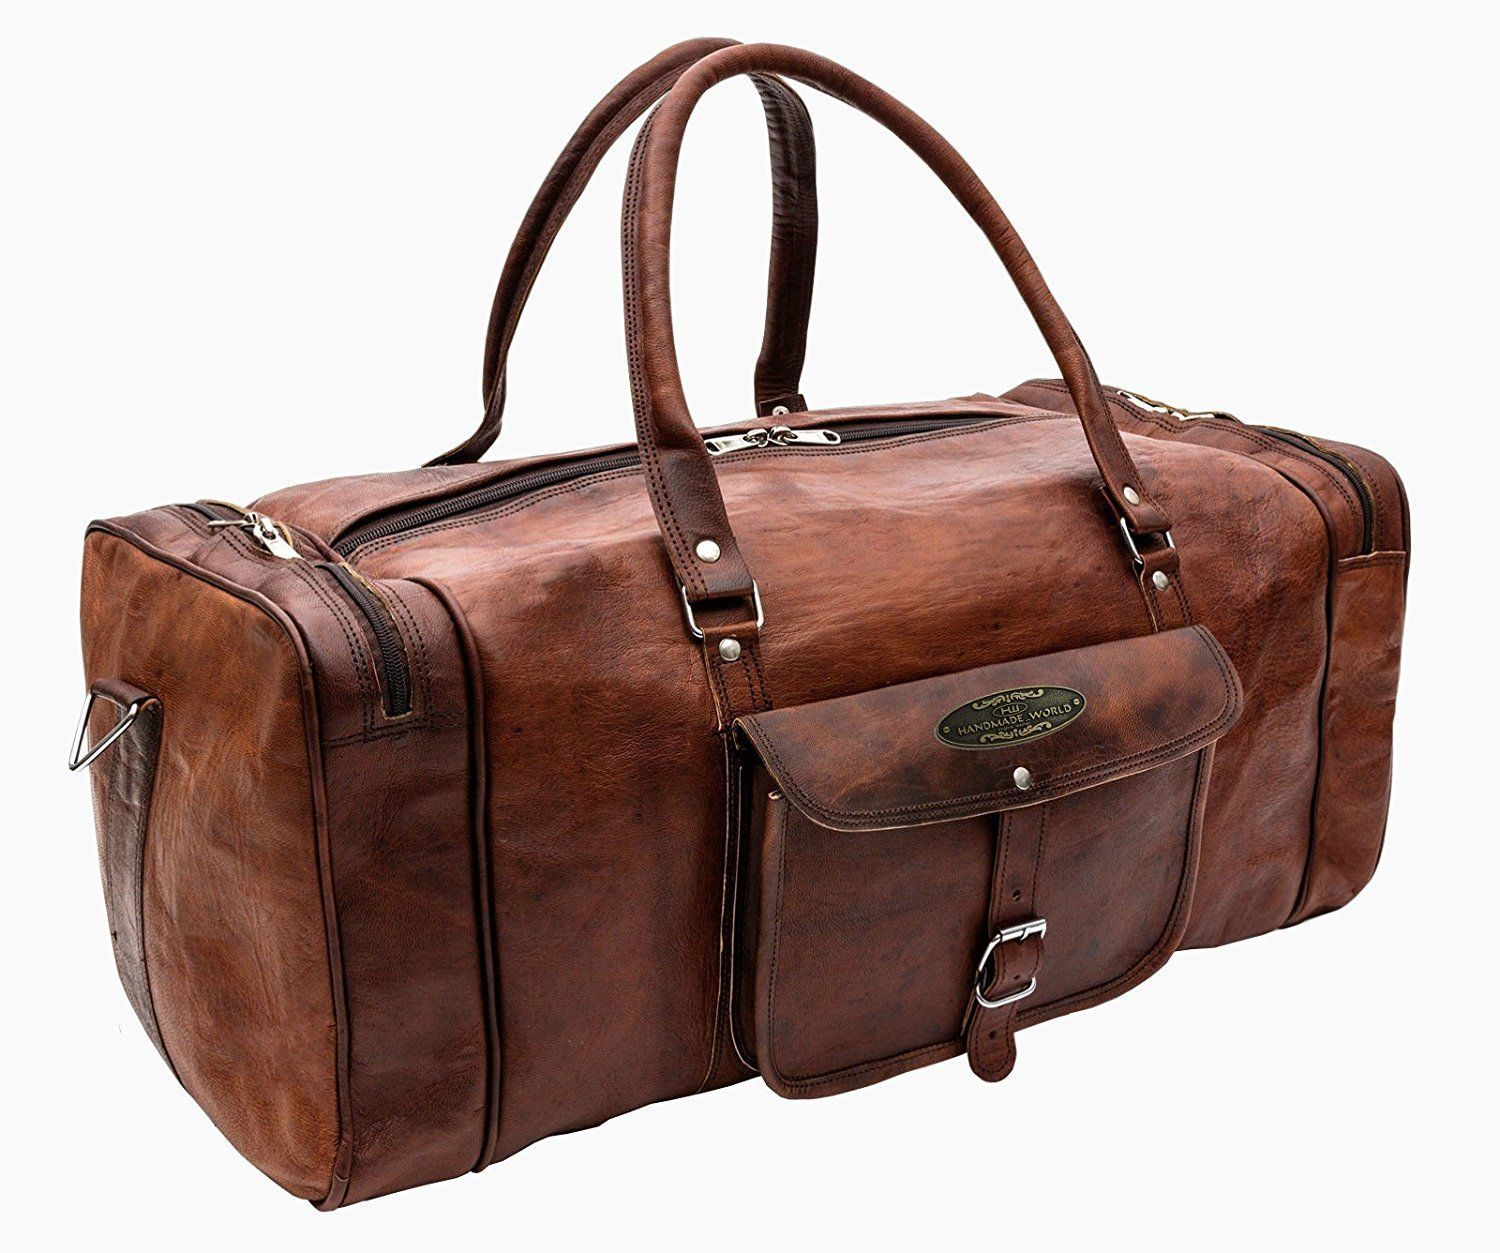 be43b1bba491 57. 57. Previous. Men s Luxury Leather Travel Weekend Luggage Duffel Gym  Messenger Bags Suitcases